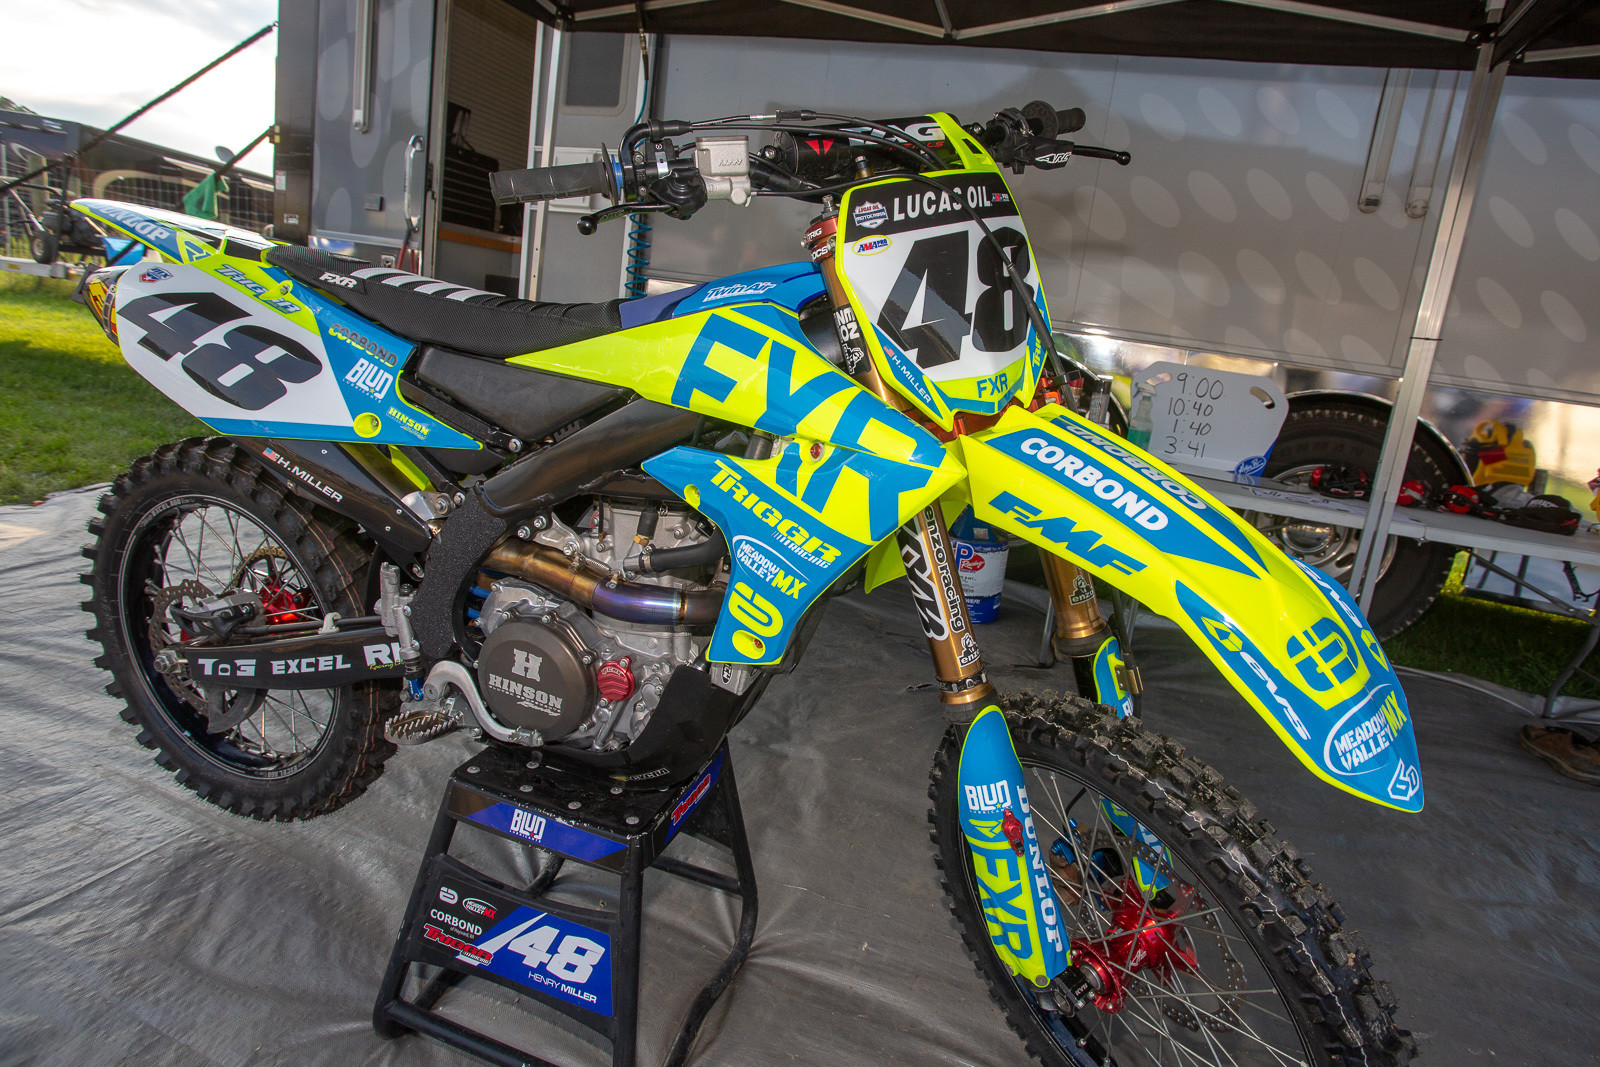 Every year Henry Miller and FXR do something special for his bike, and this year was no exception. The plastic and graphics on his Yamaha matched up nicely with his gear.